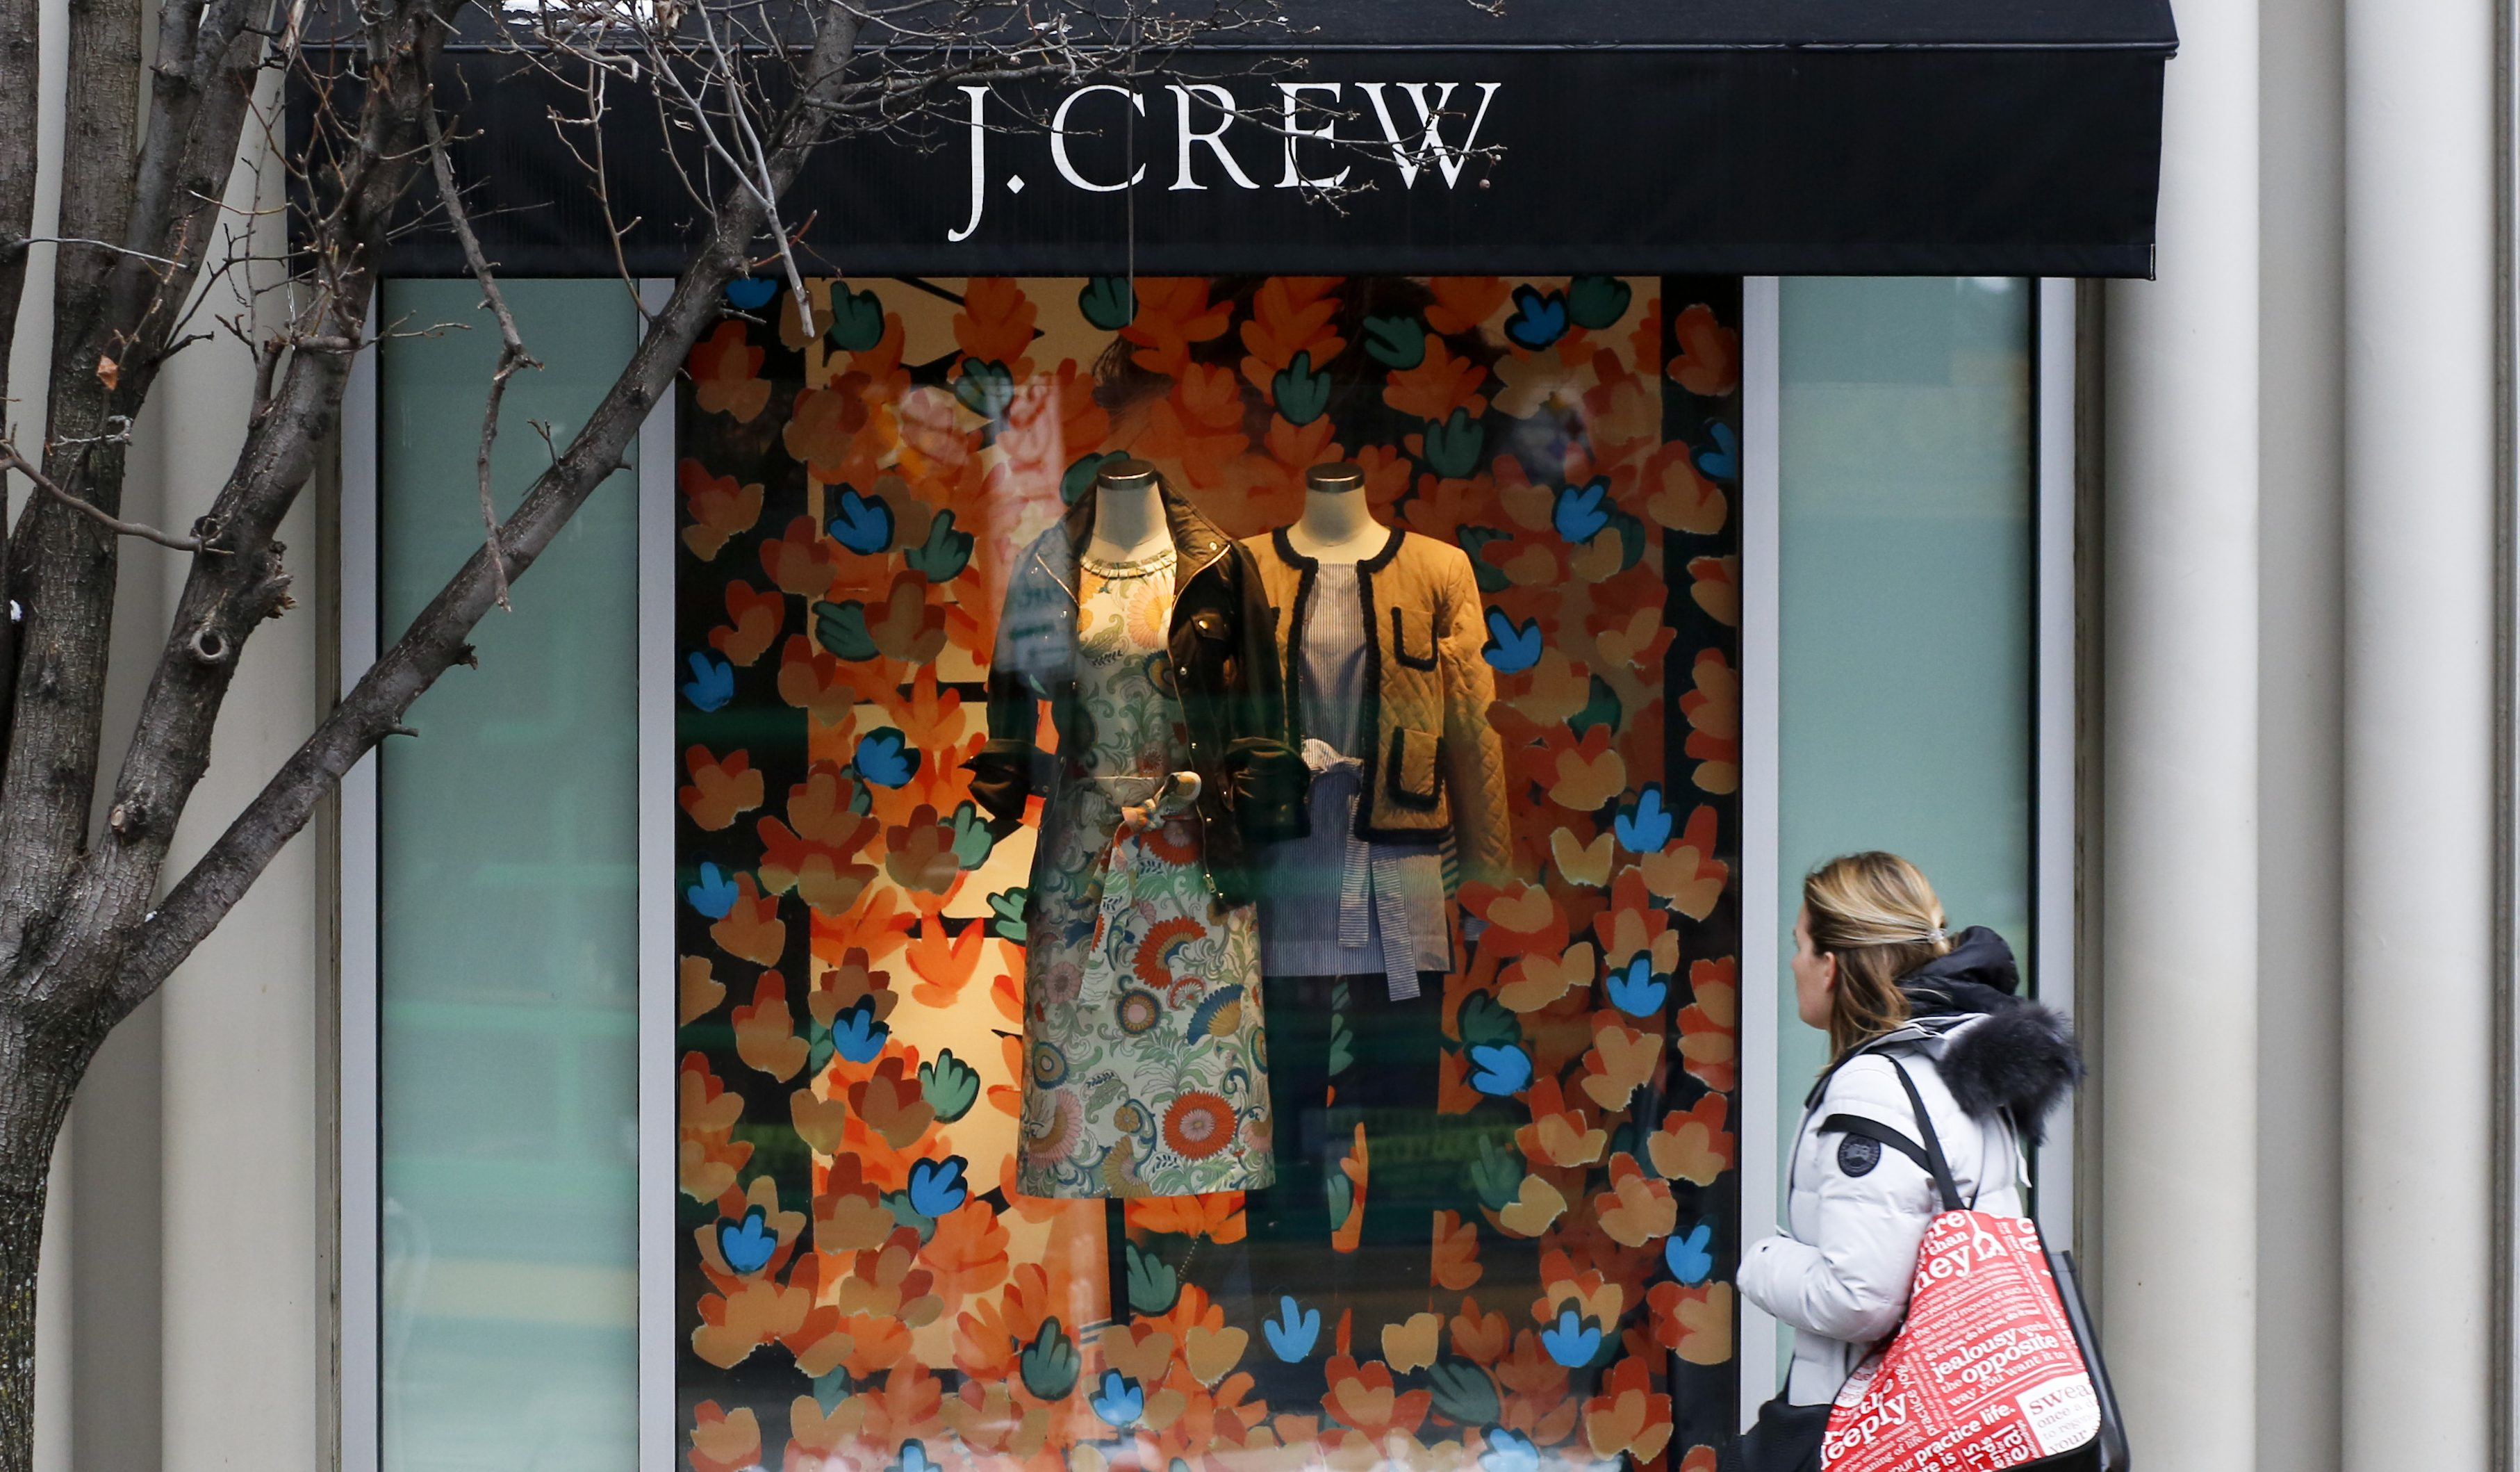 A shopper passes the display in the window of a J.Crew store in the Shadyside shopping district of Pittsburgh Friday, Feb. 10, 2017. (AP Photo/Gene J. Puskar)